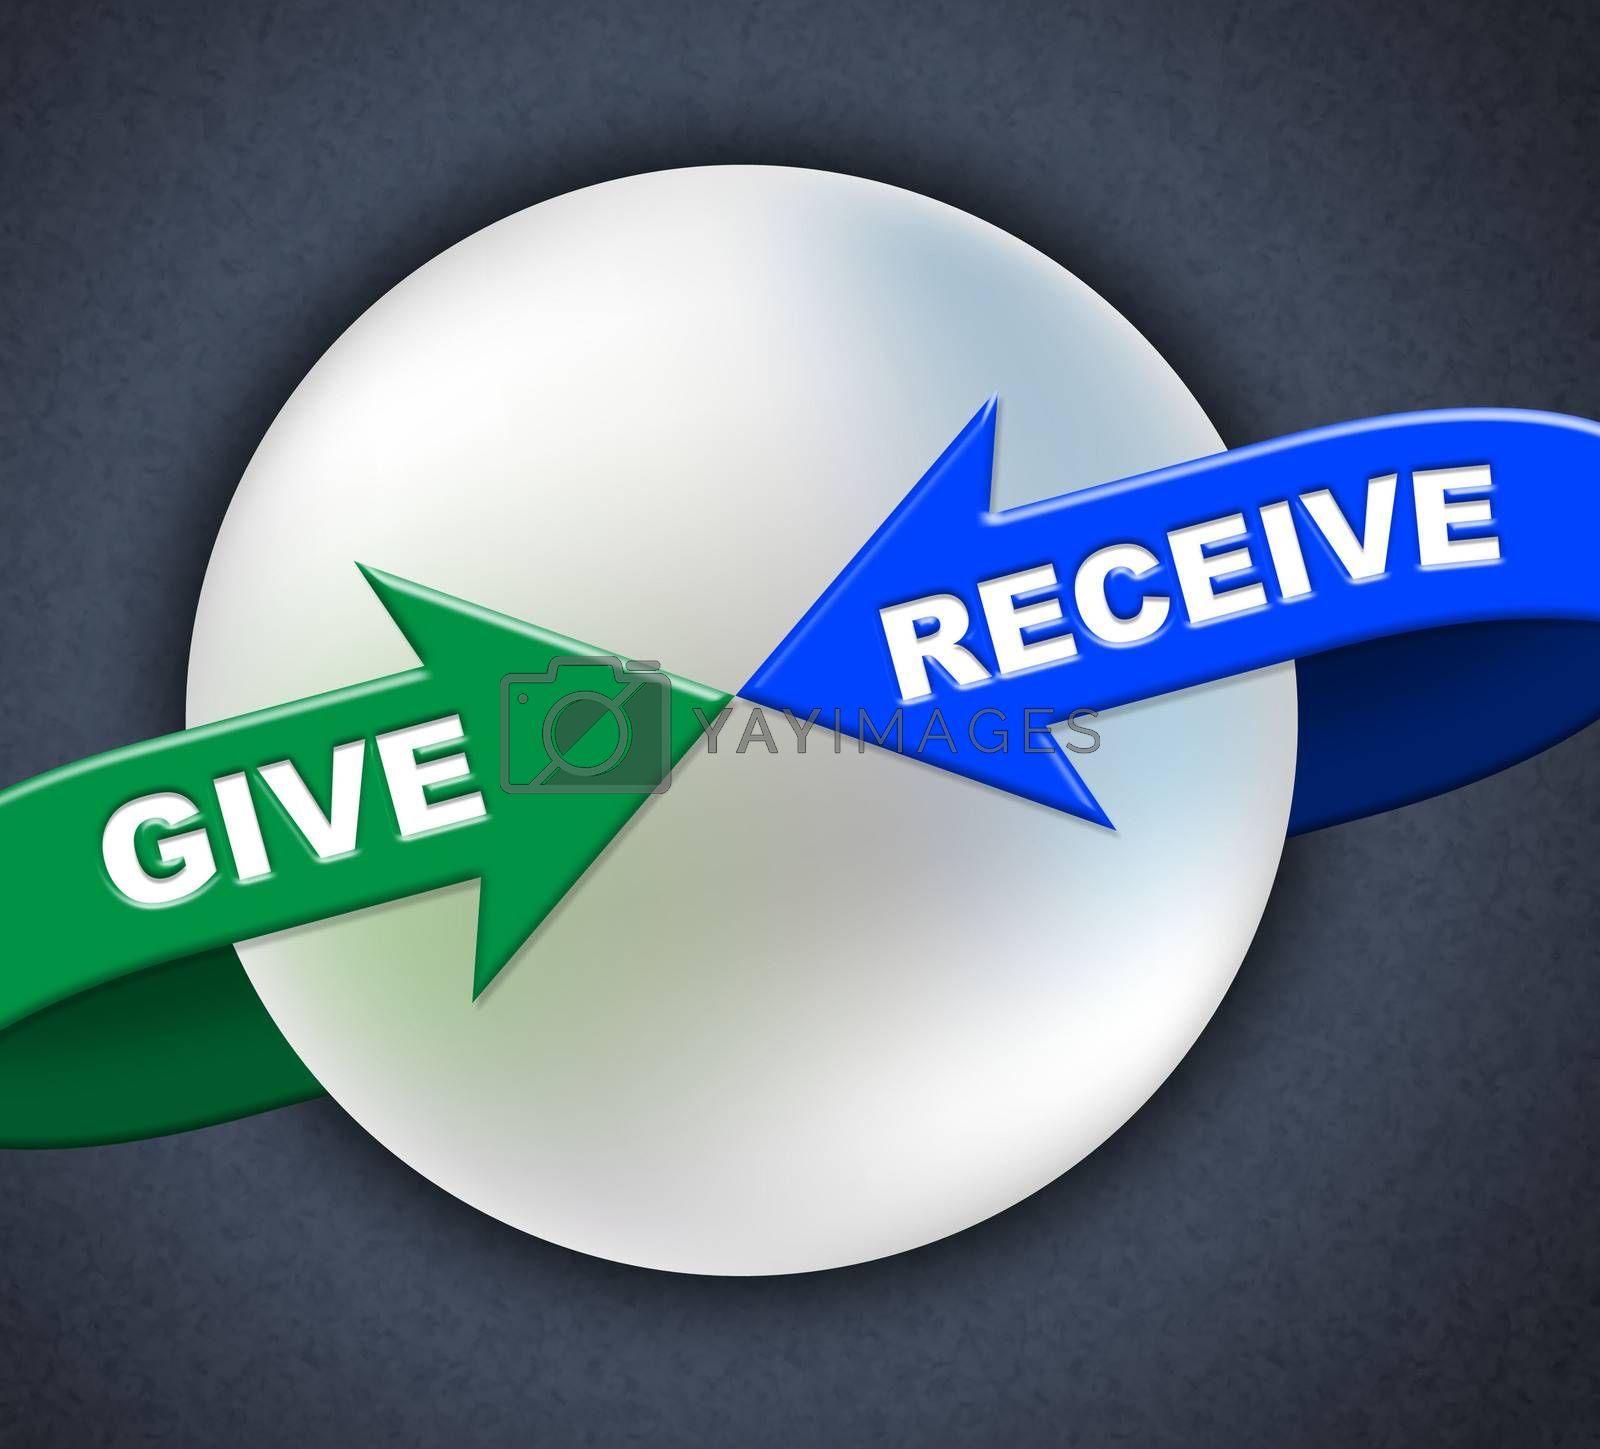 Give Receive Arrows Represents Present Donate And Take by stuartmiles